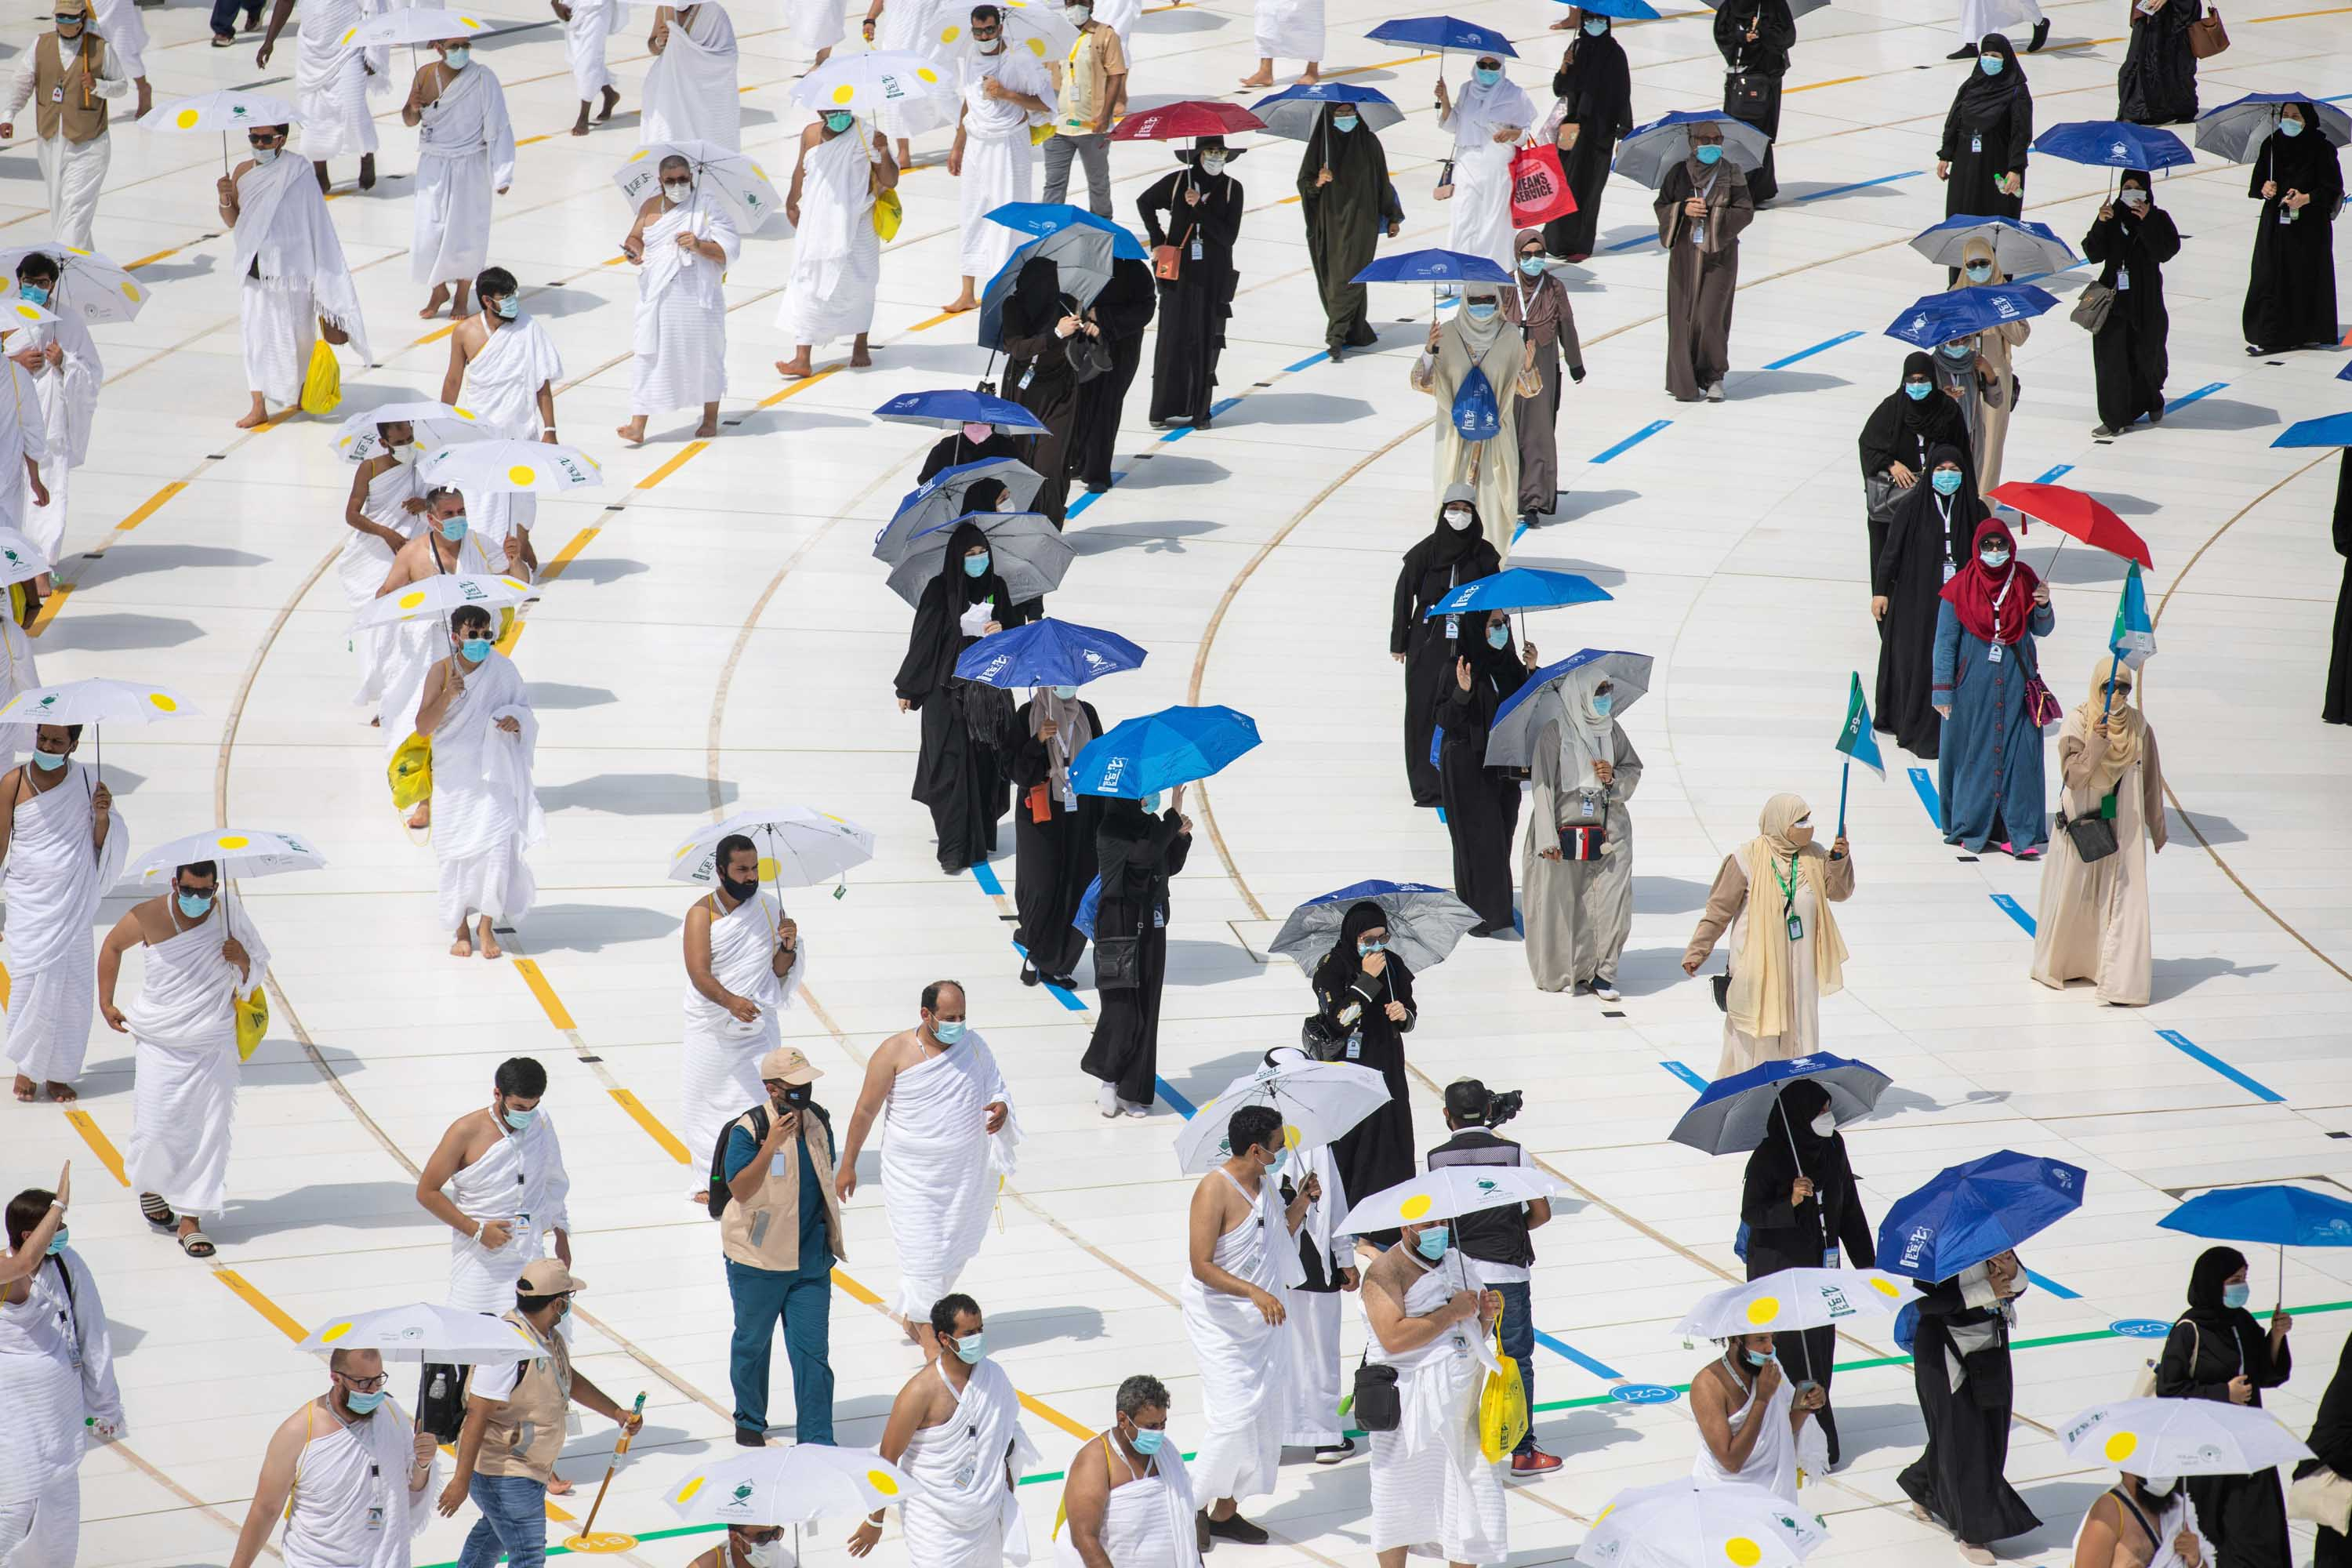 Hajj 2020 begins -- with 1,000 pilgrims, rather than the usual 2 million |  CNN Travel